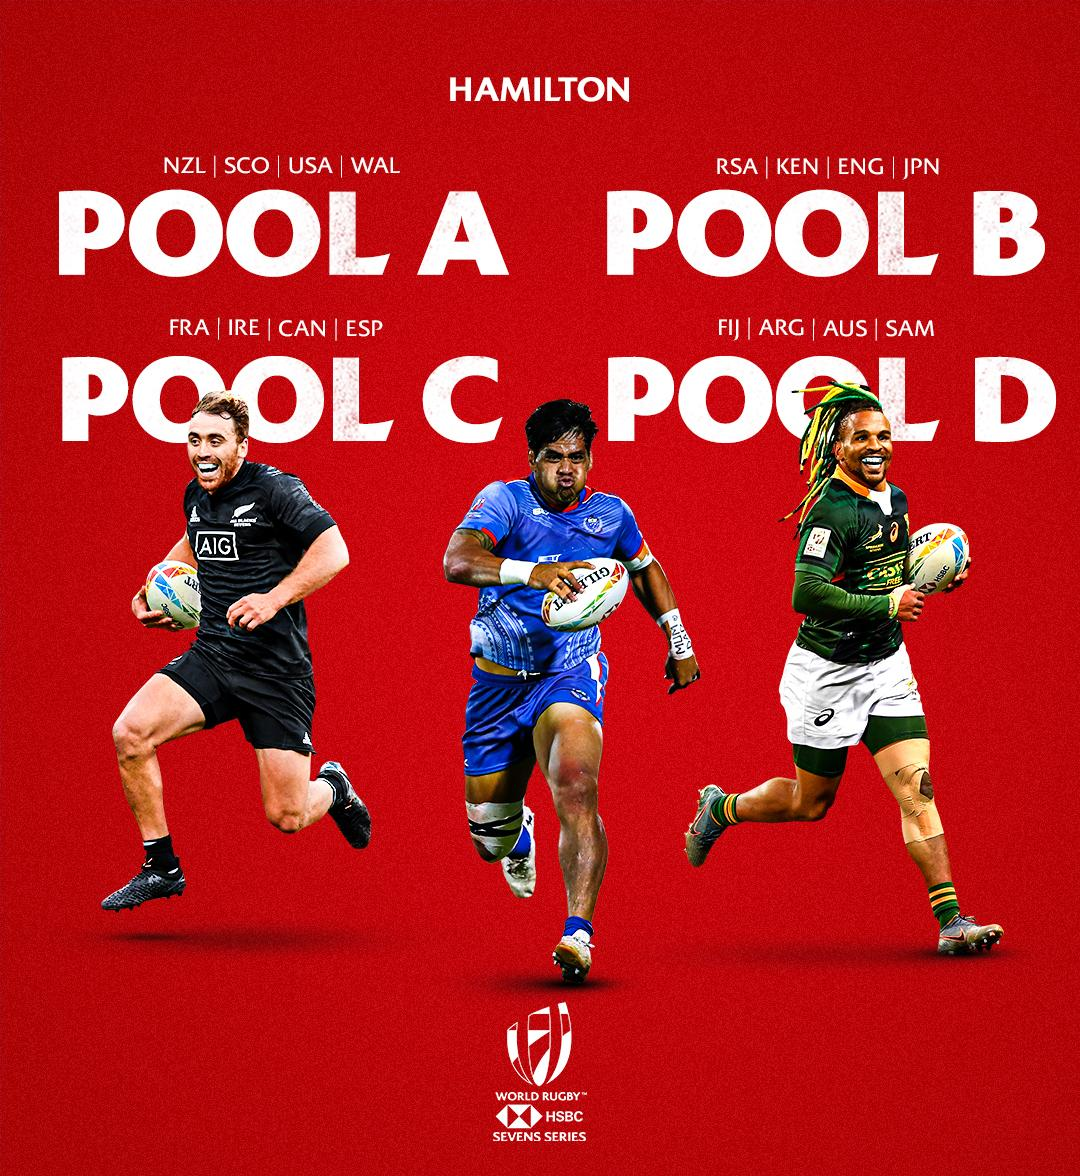 The pools and schedule have been announced for the HSBC @NZ_Sevens, kicking off on 25 January in Hamilton   Men's fixtures: https://t.co/2zv2LWqpVr  Women's fixtures: https://t.co/lRrkuEsWOp  #NZSevens #HSBC7s https://t.co/z3xFe87jQJ